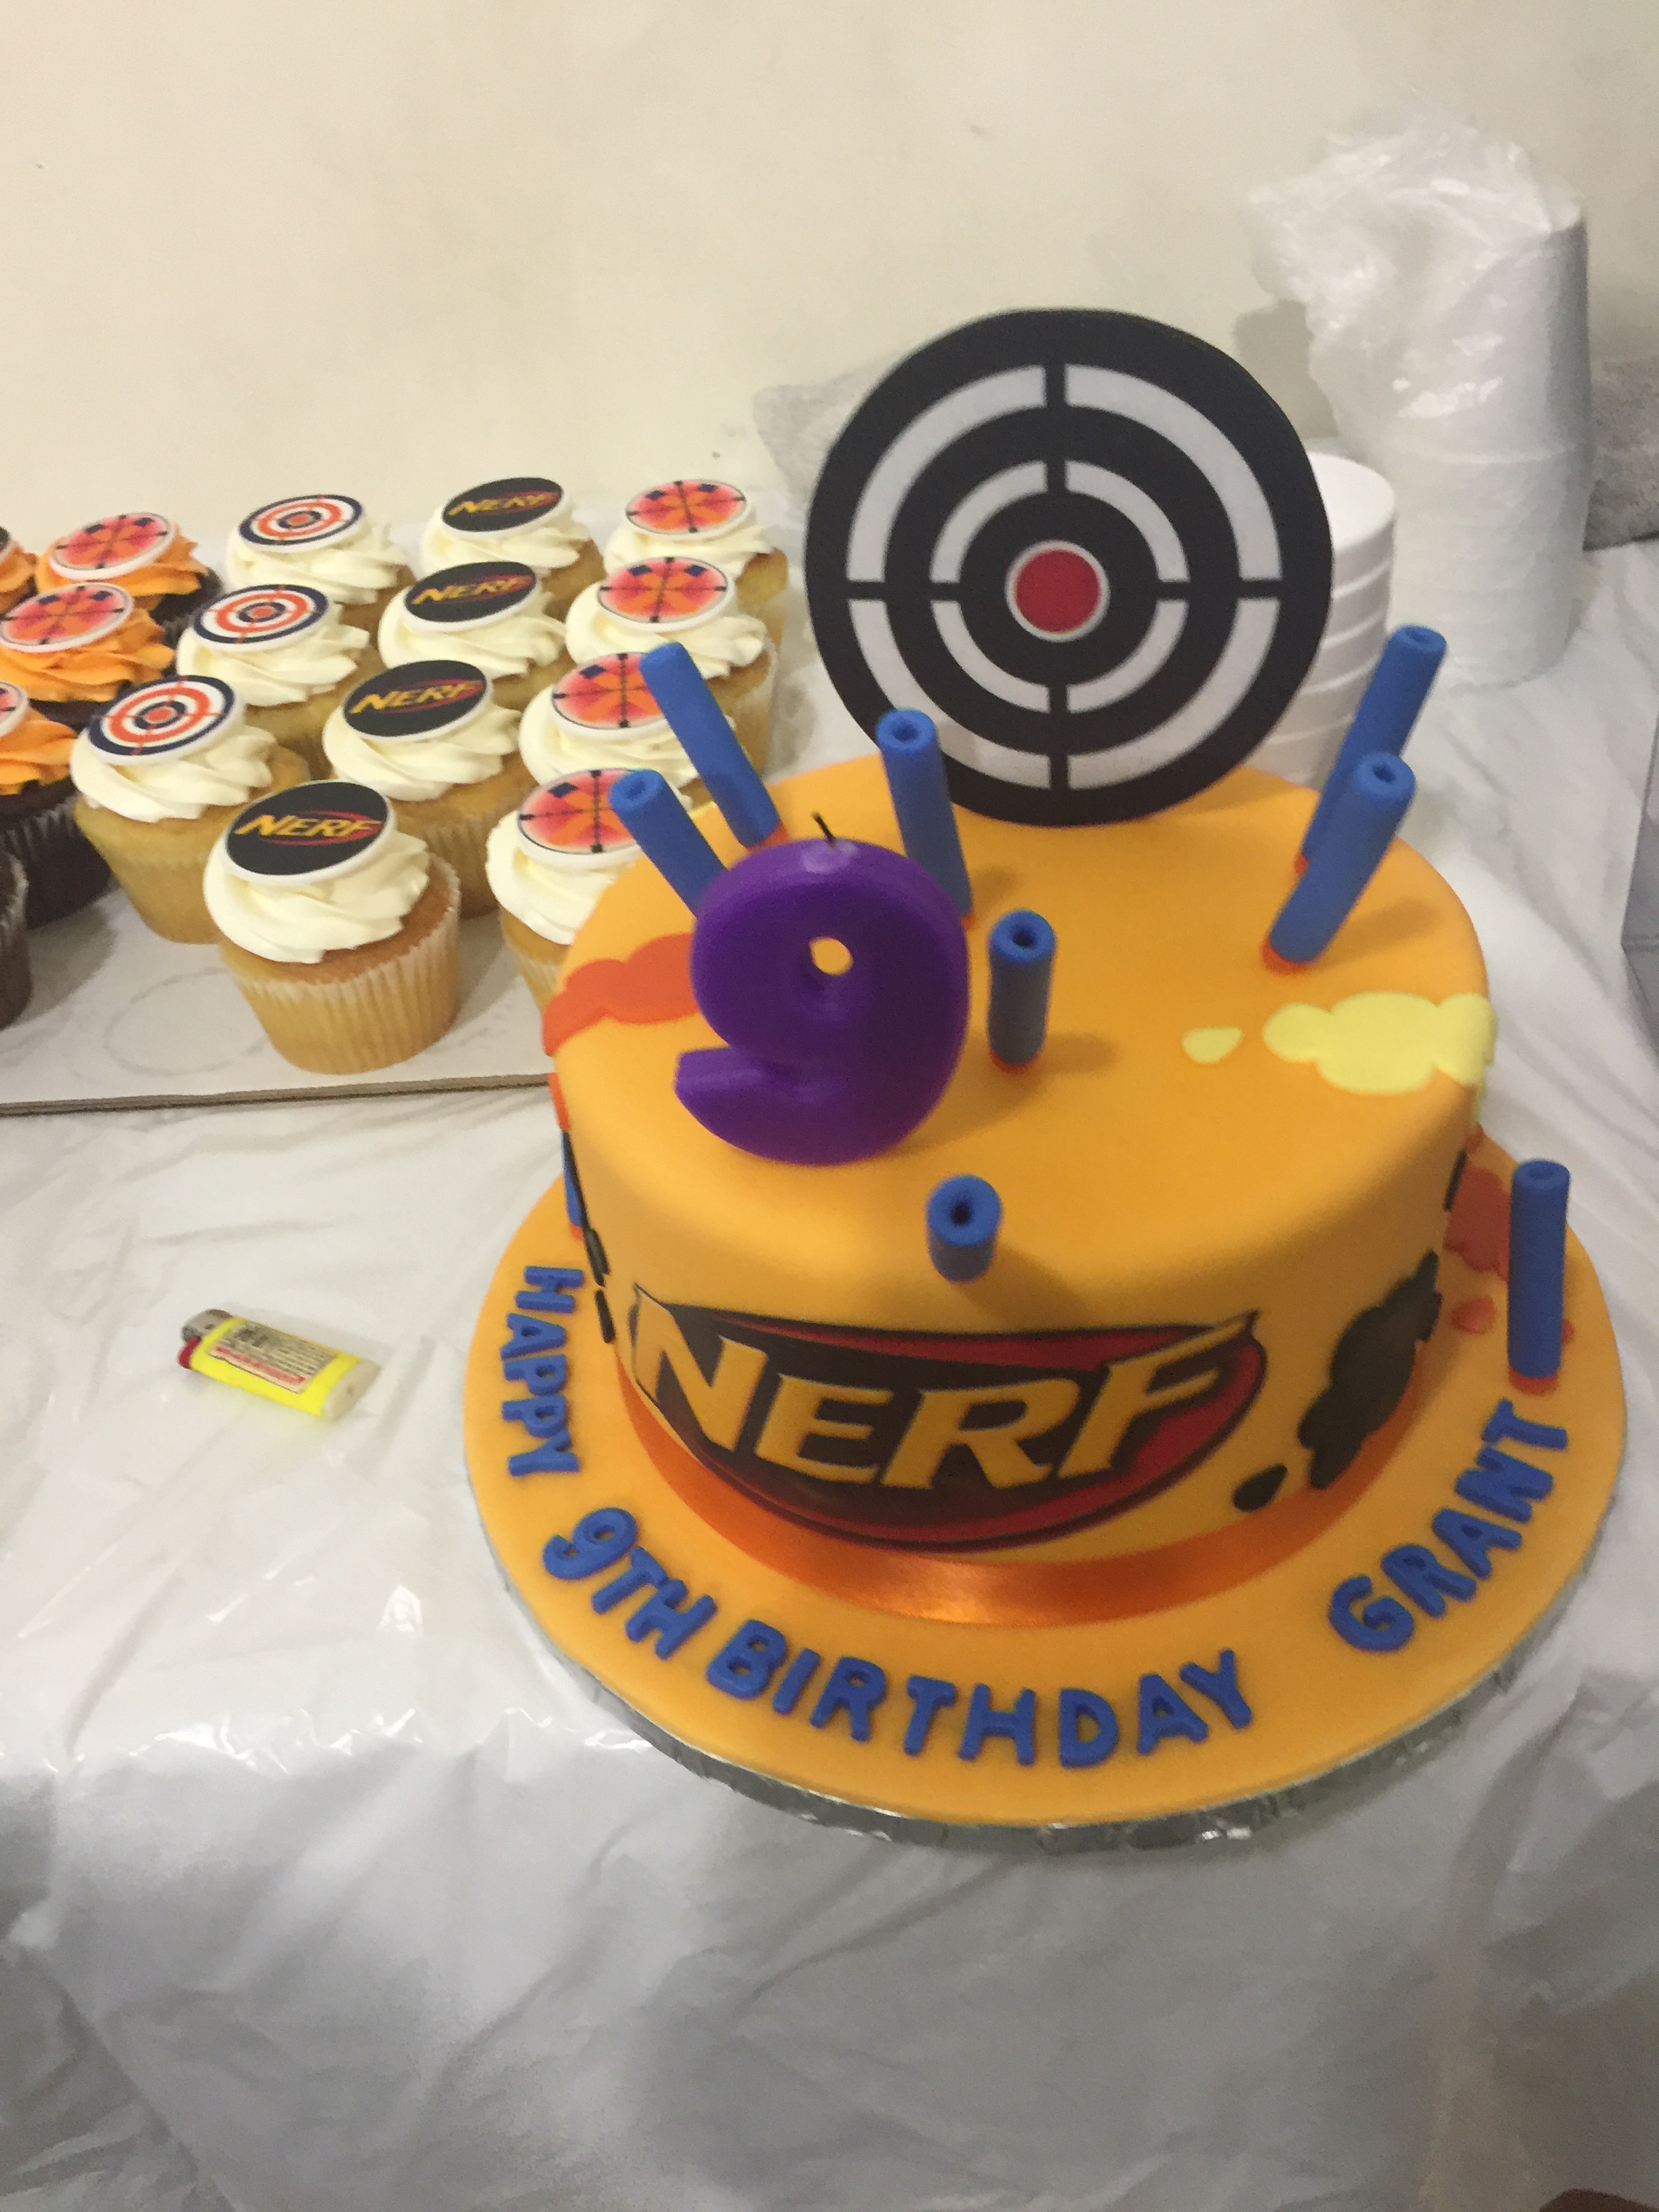 3129, 9th birthday, ninth birthday, nerf, yellow, target, purple, blue, edible image, cupcake, cupcakes